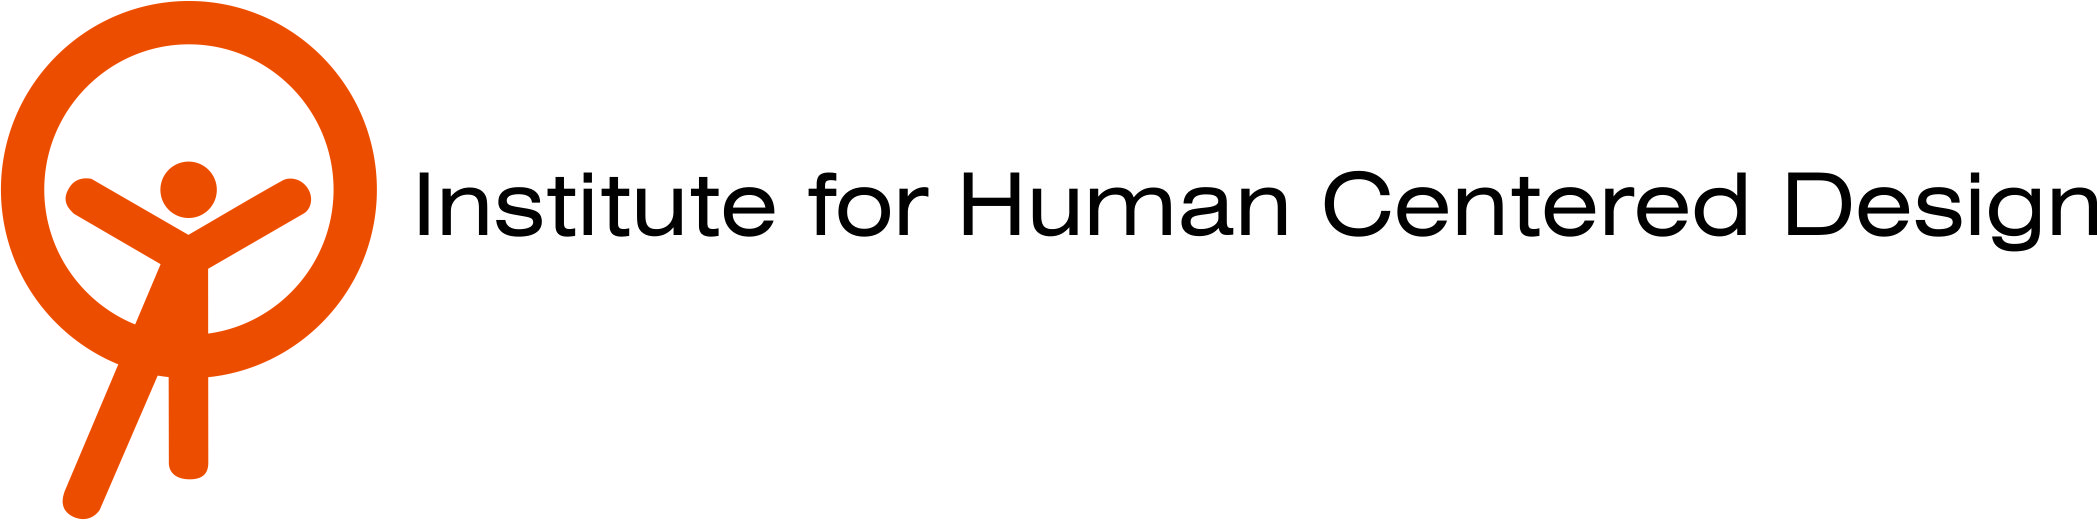 Institute for Human Centered Design Logo